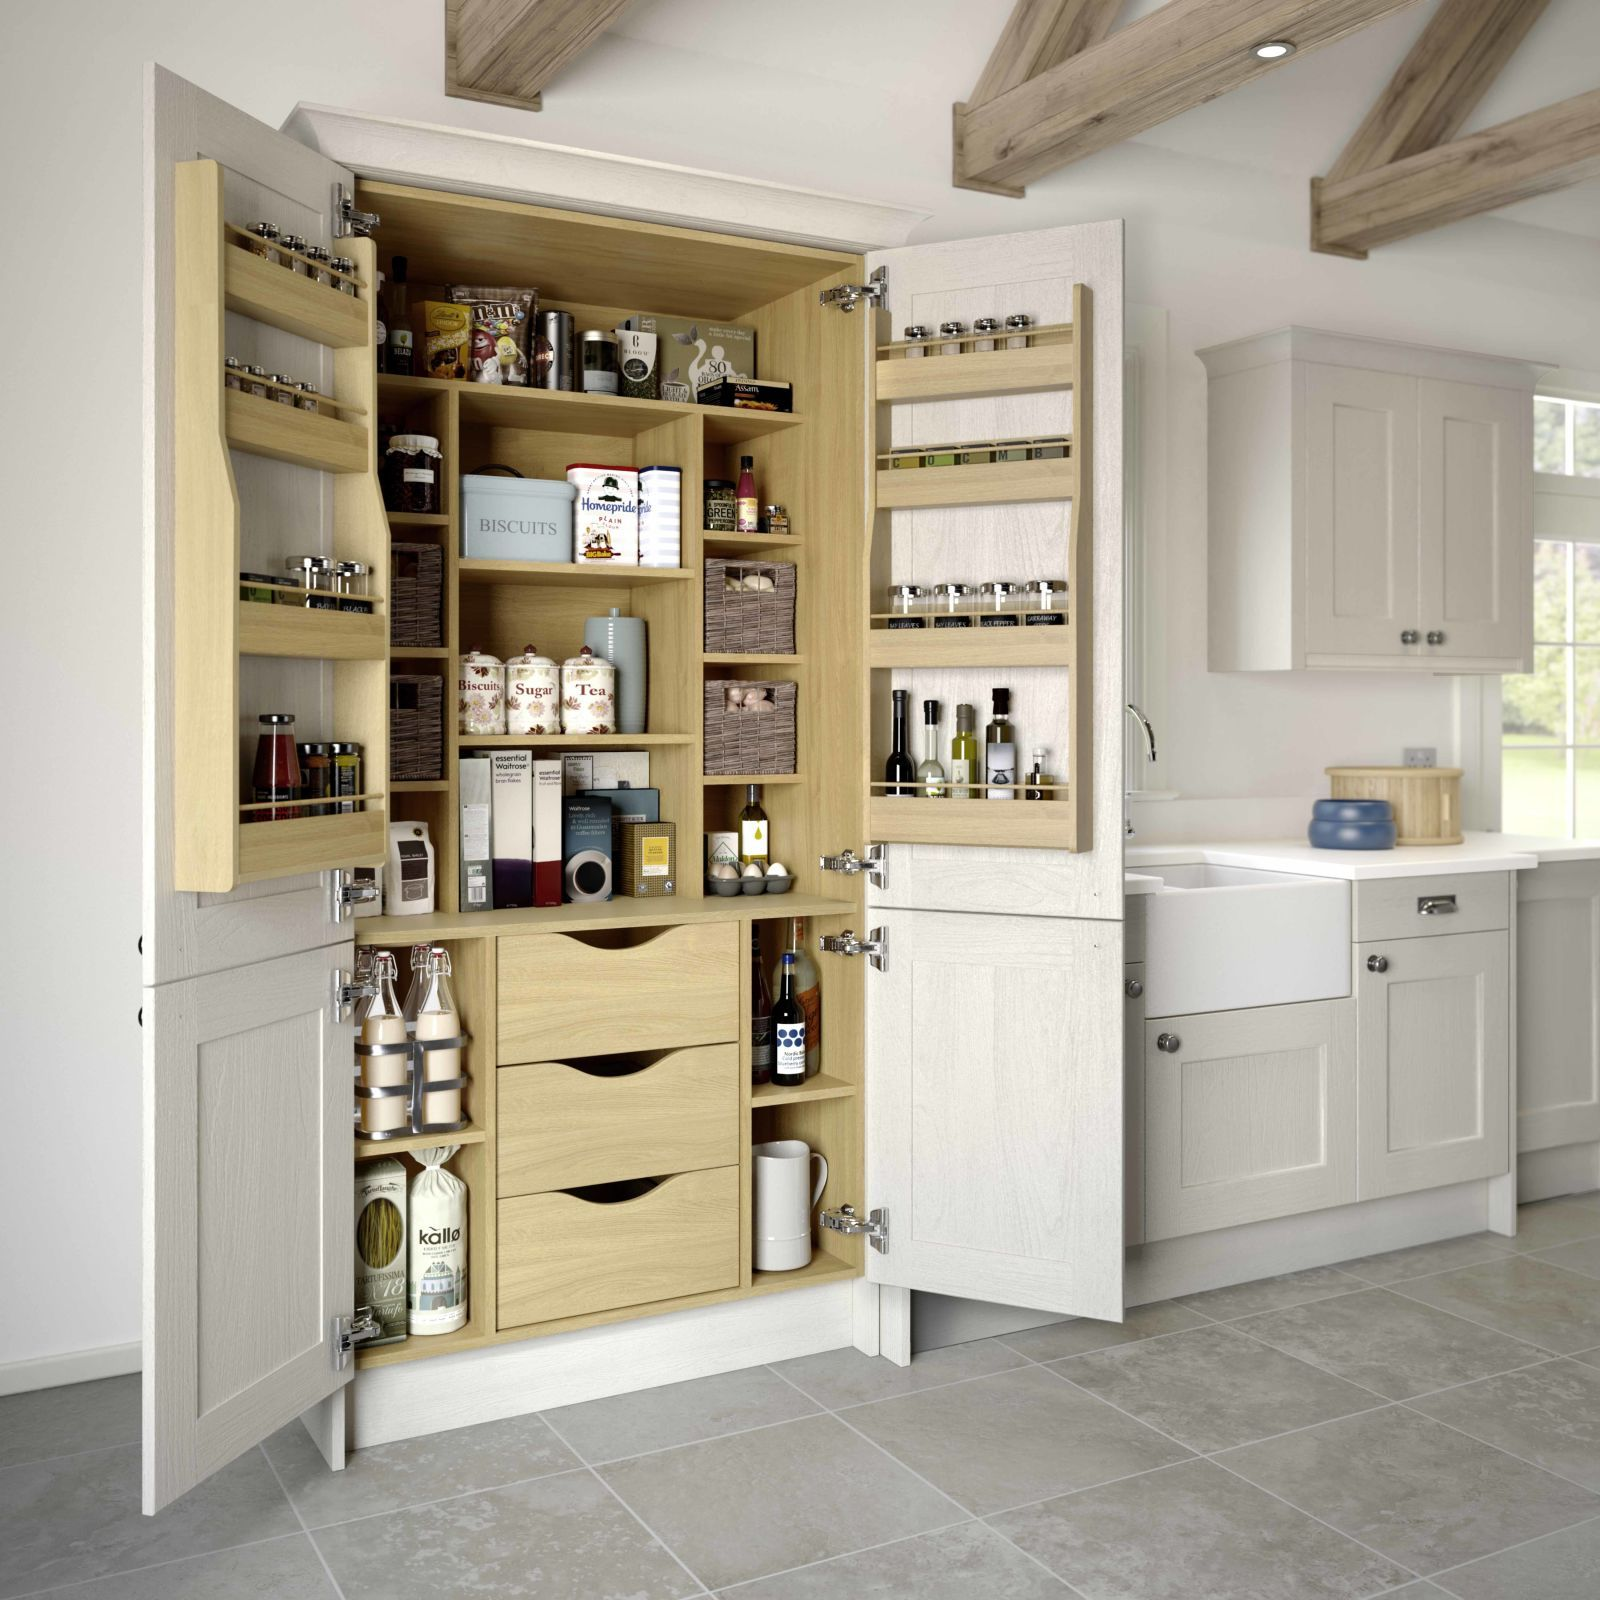 Small Kitchen Uk 10 Kitchen Trends Well Be Seeing In 2017 Larder Cupboard